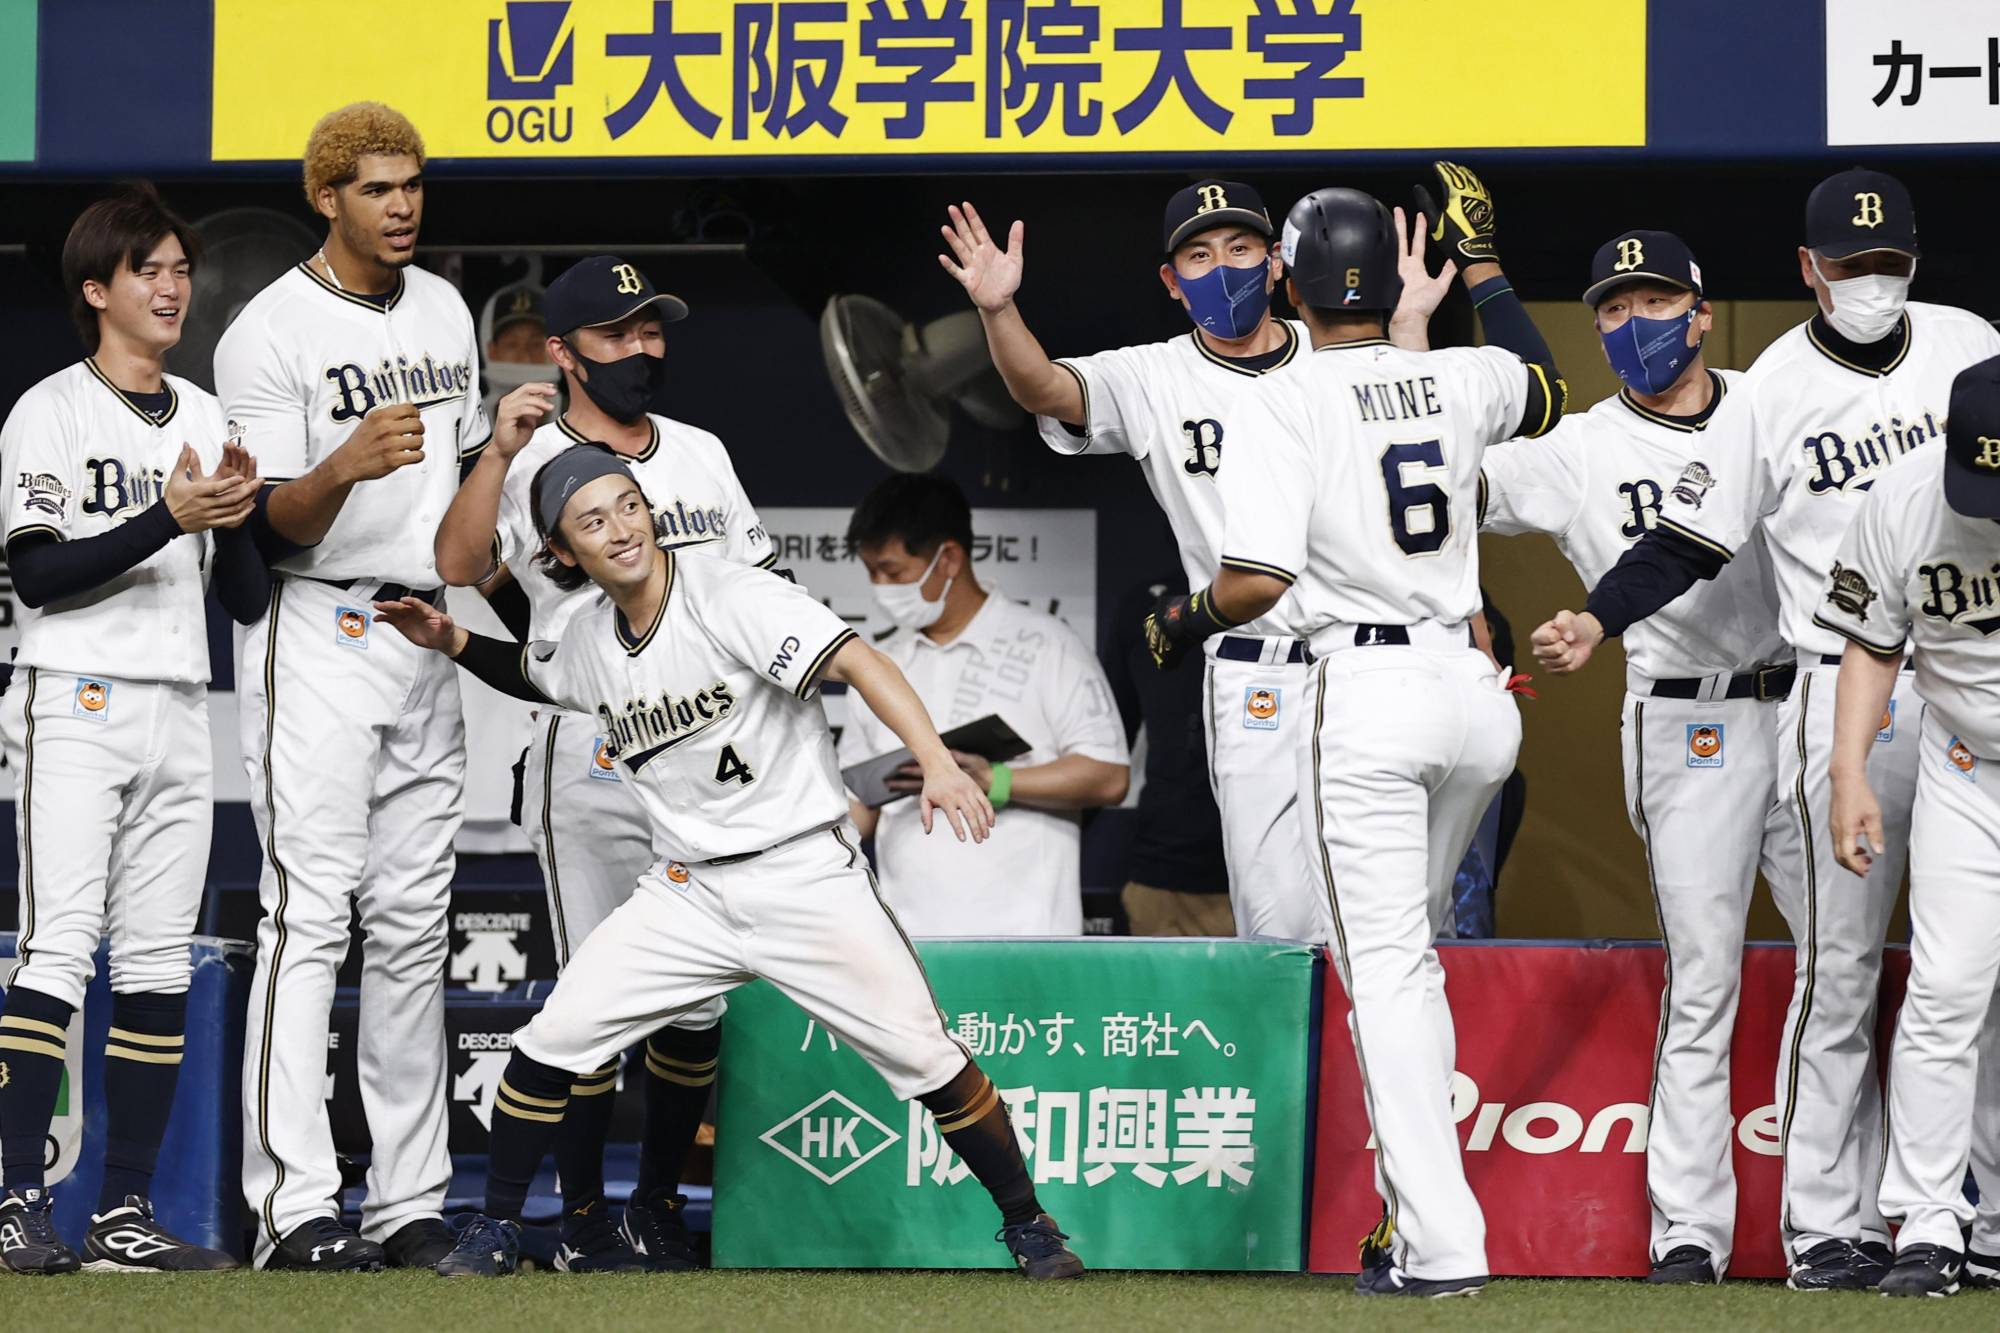 Yuma Mune (6) celebrates at the Orix dugout after hitting a game-tying home run in the eighth inning against the Marines on Tuesday in Osaka.   KYODO